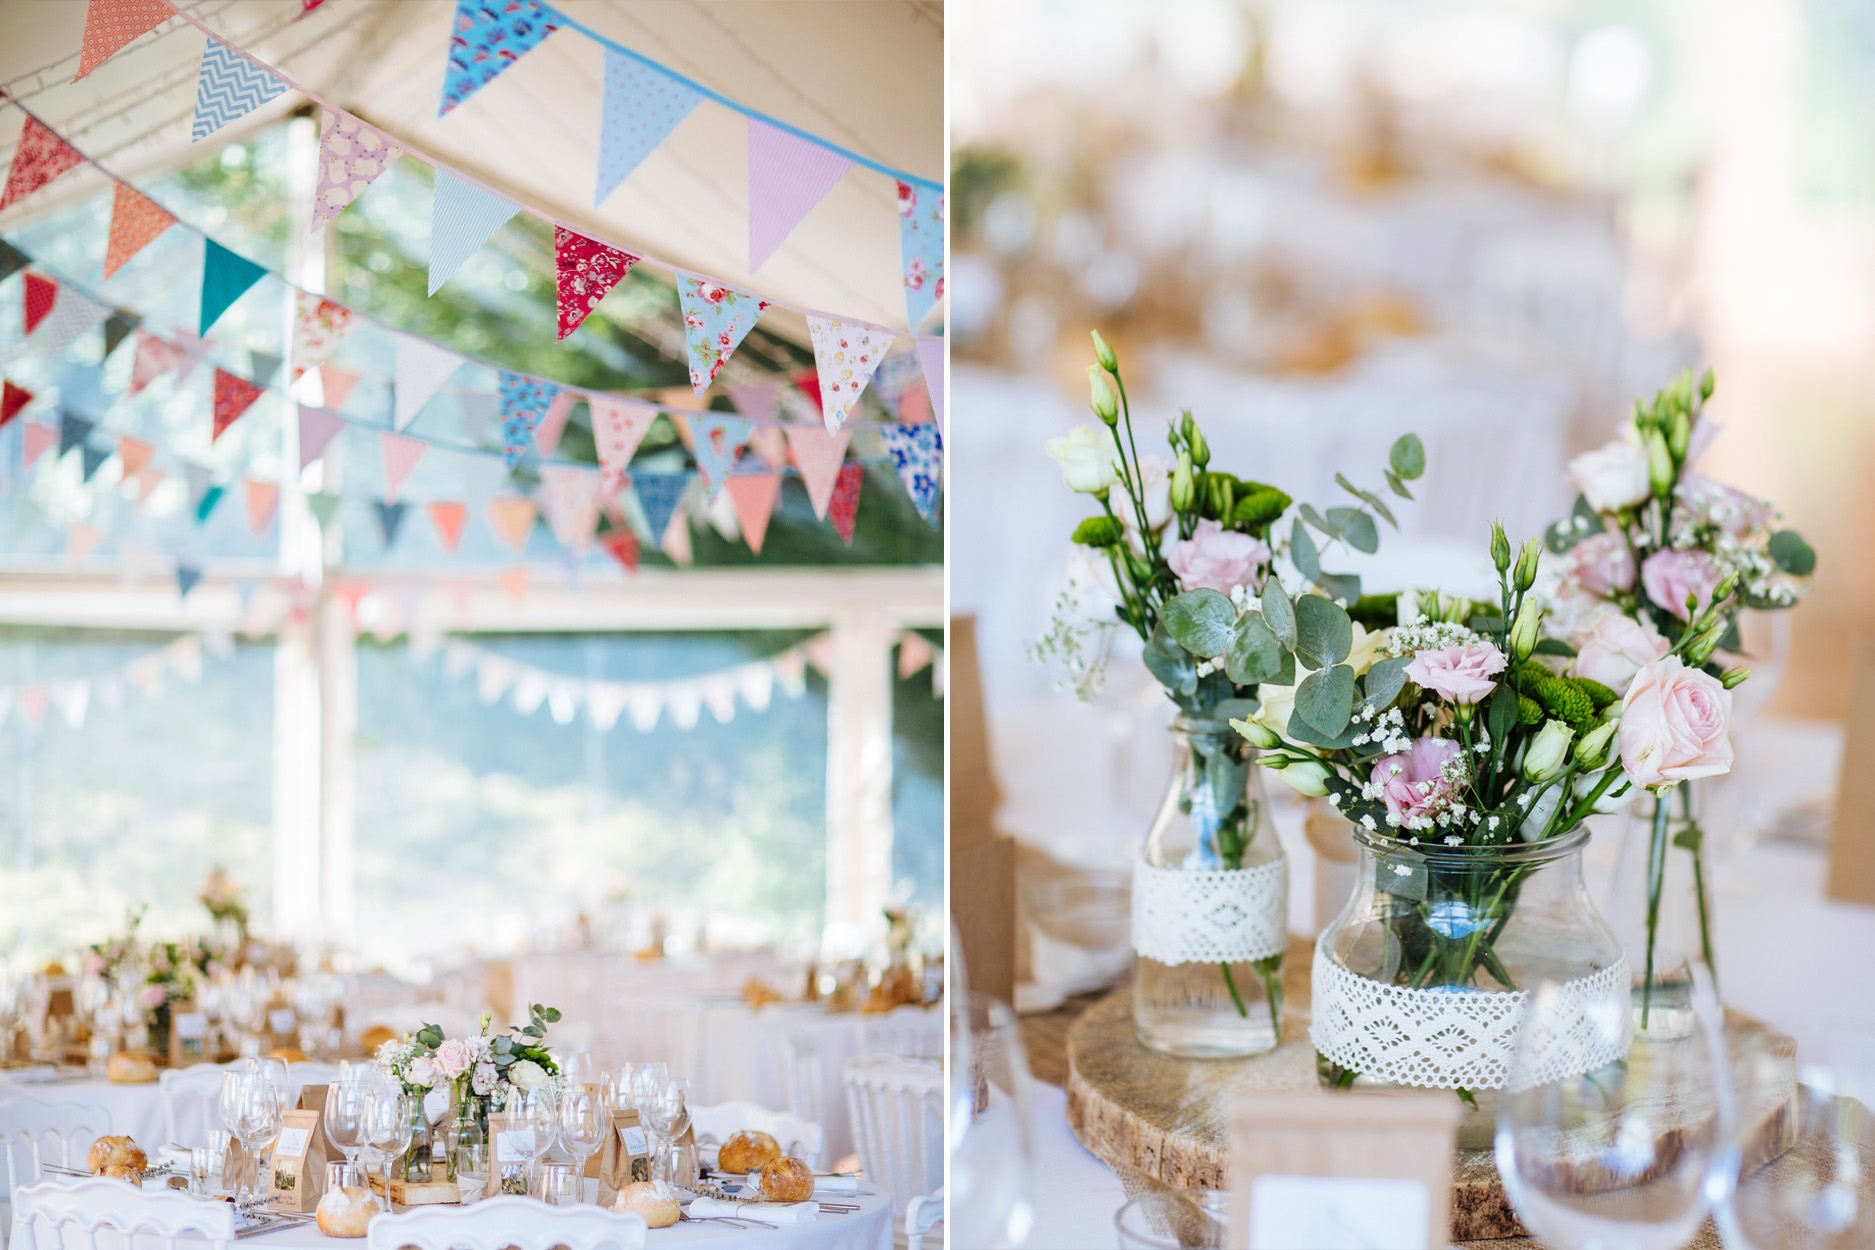 colourful wedding marquee with bunting